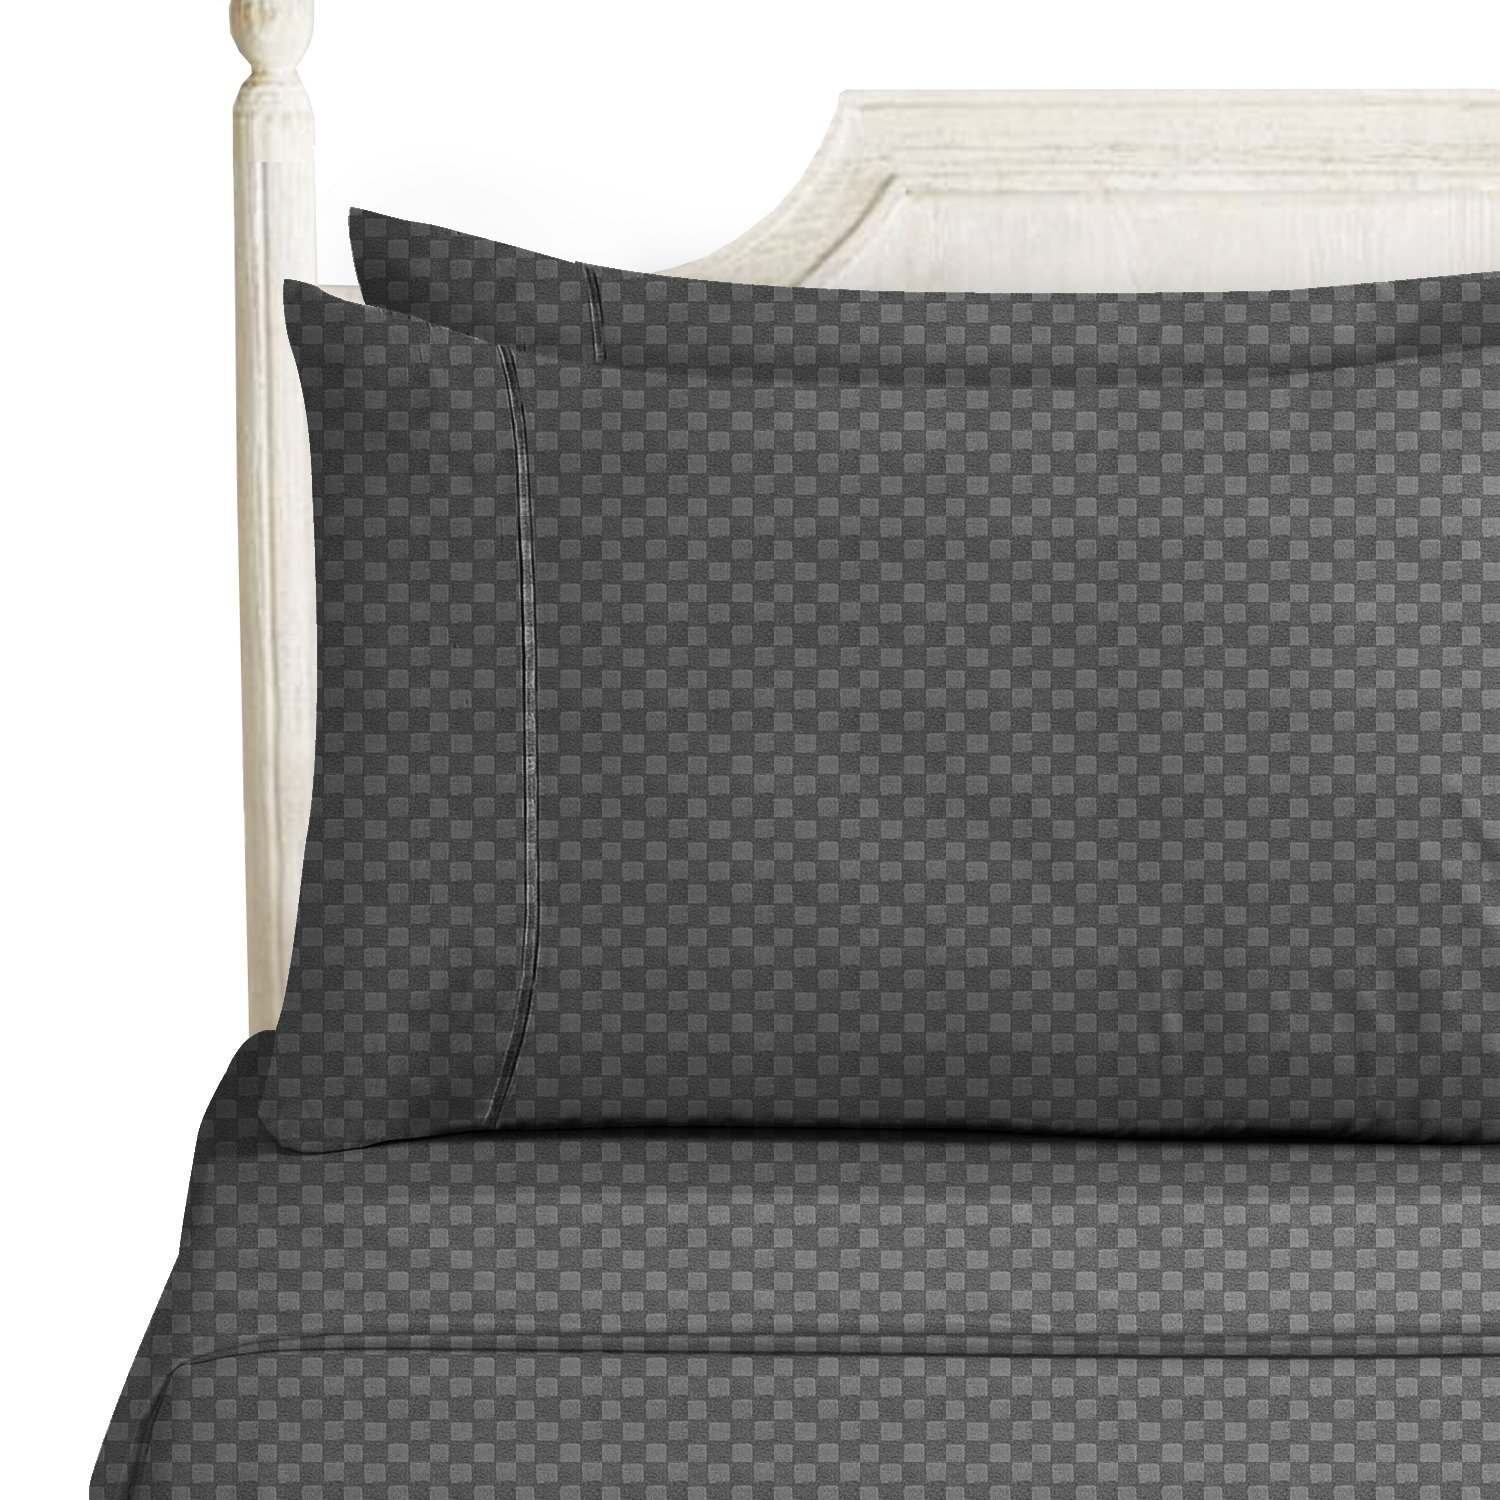 Bed Sheet Bedding Set, Queen, Charcoal Stone Gray, Elegant Checkerboard Design - 2000 Luxury Bedding Collection